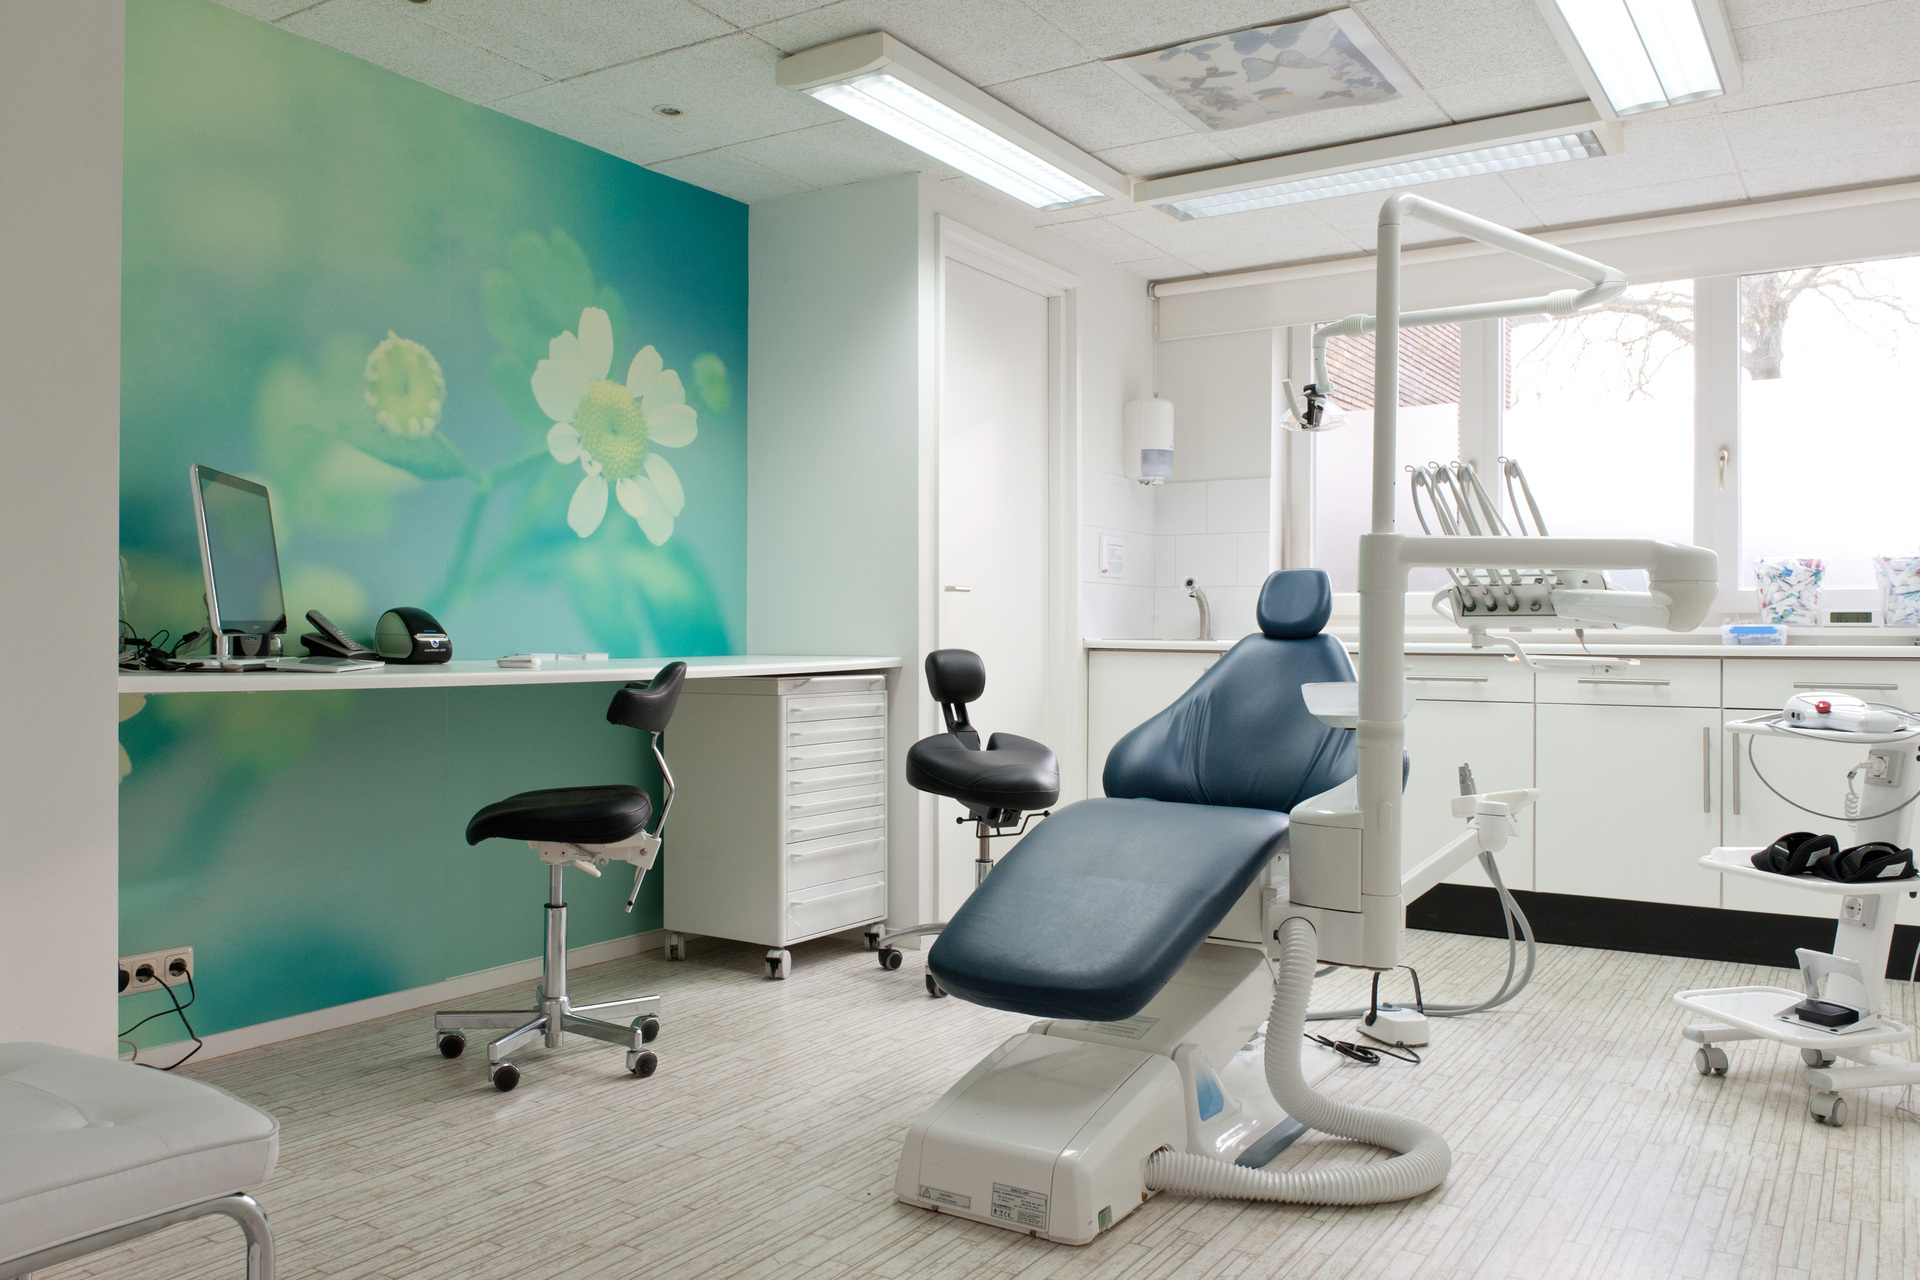 This floral wall mural by Murals Your Way creates a calm and comforting environment for any dental exam room.